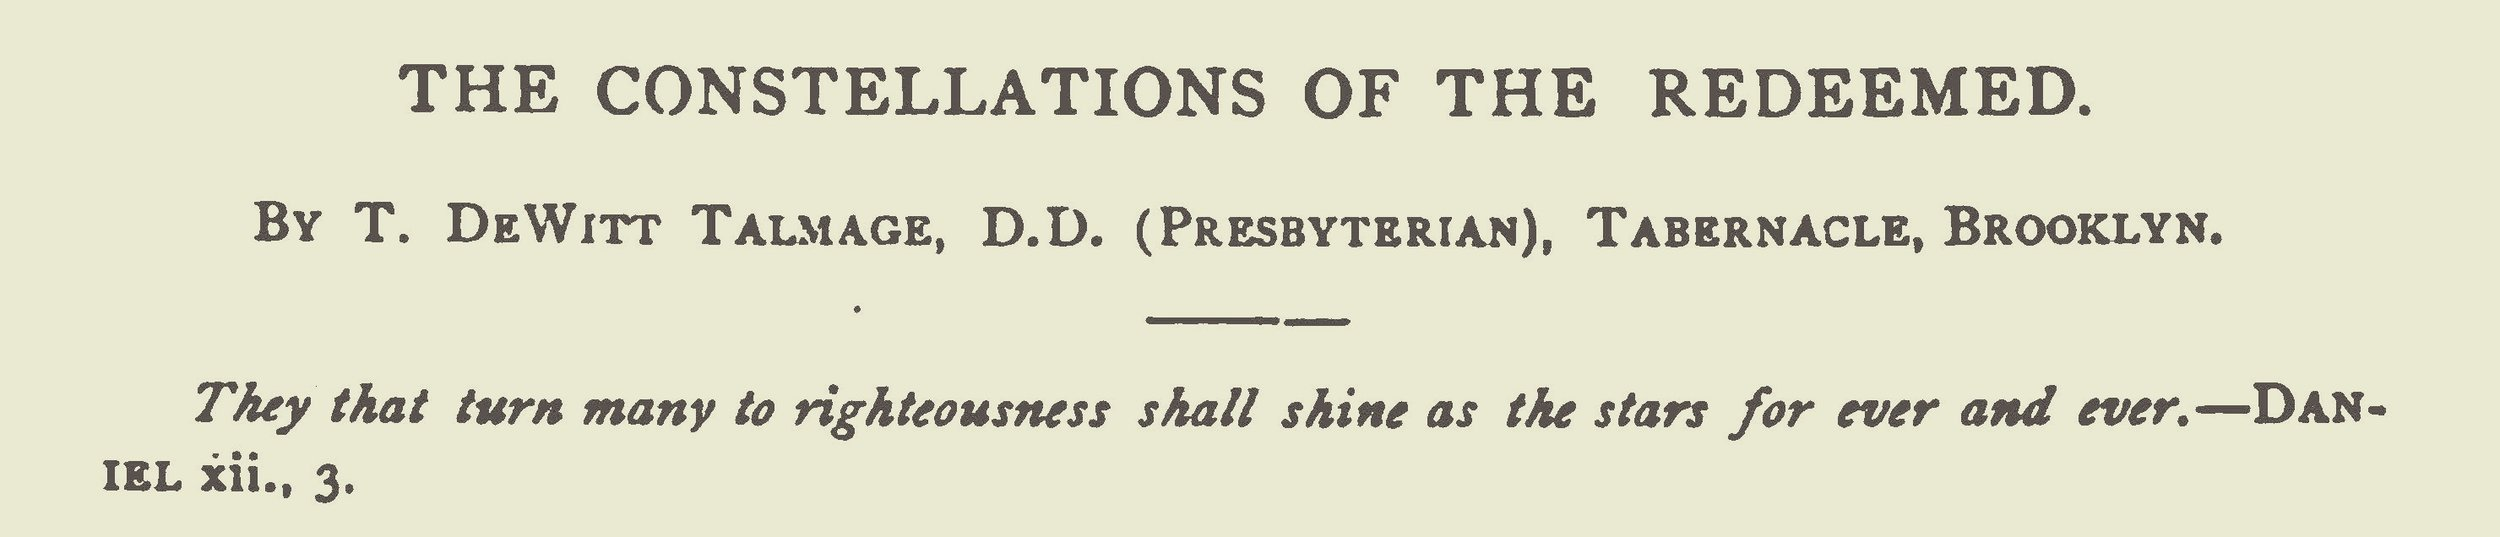 Talmage, Thomas De Witt, The Constellations of the Redeemed Title Page.jpg